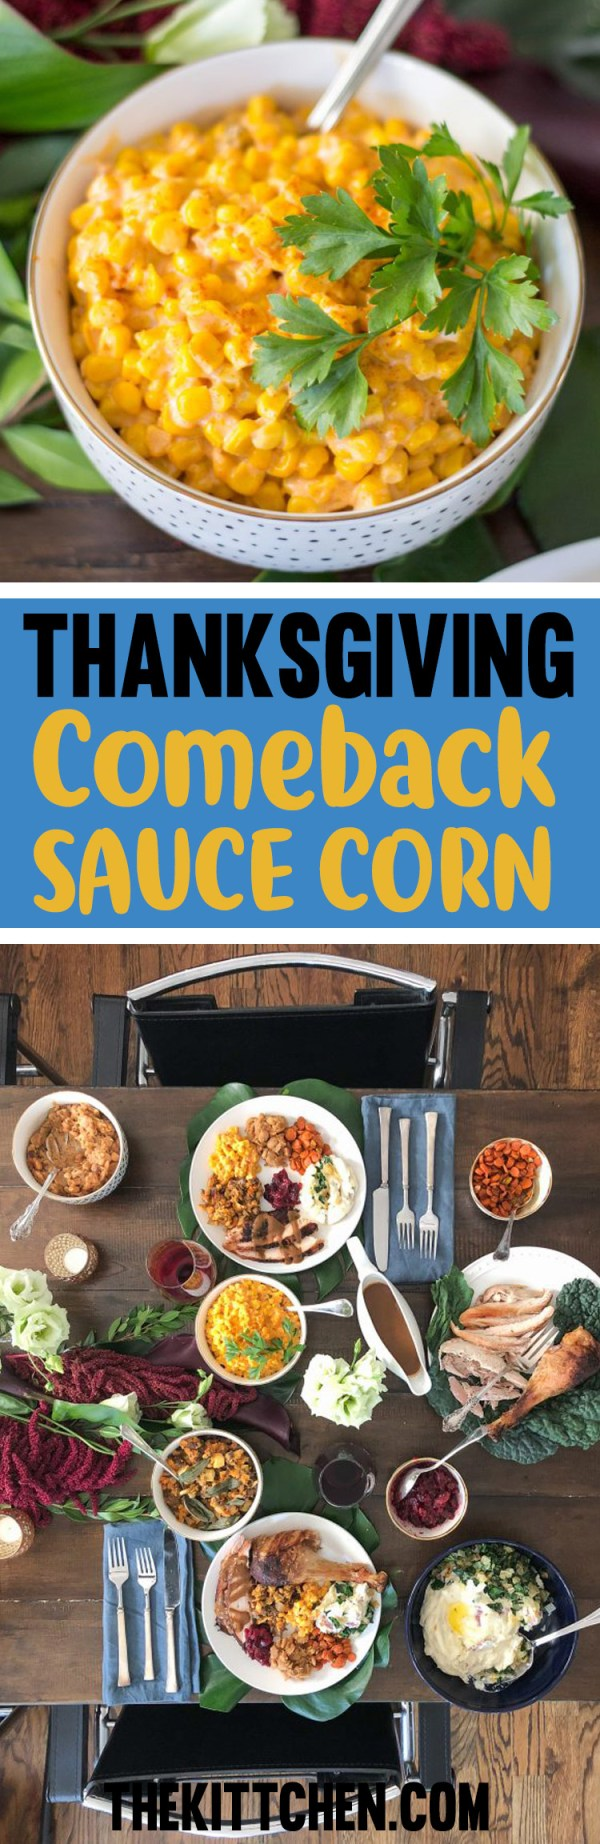 This easy 20 minute recipe for corn in a Mississippi comeback sauce is so good that my friends ate every bite.